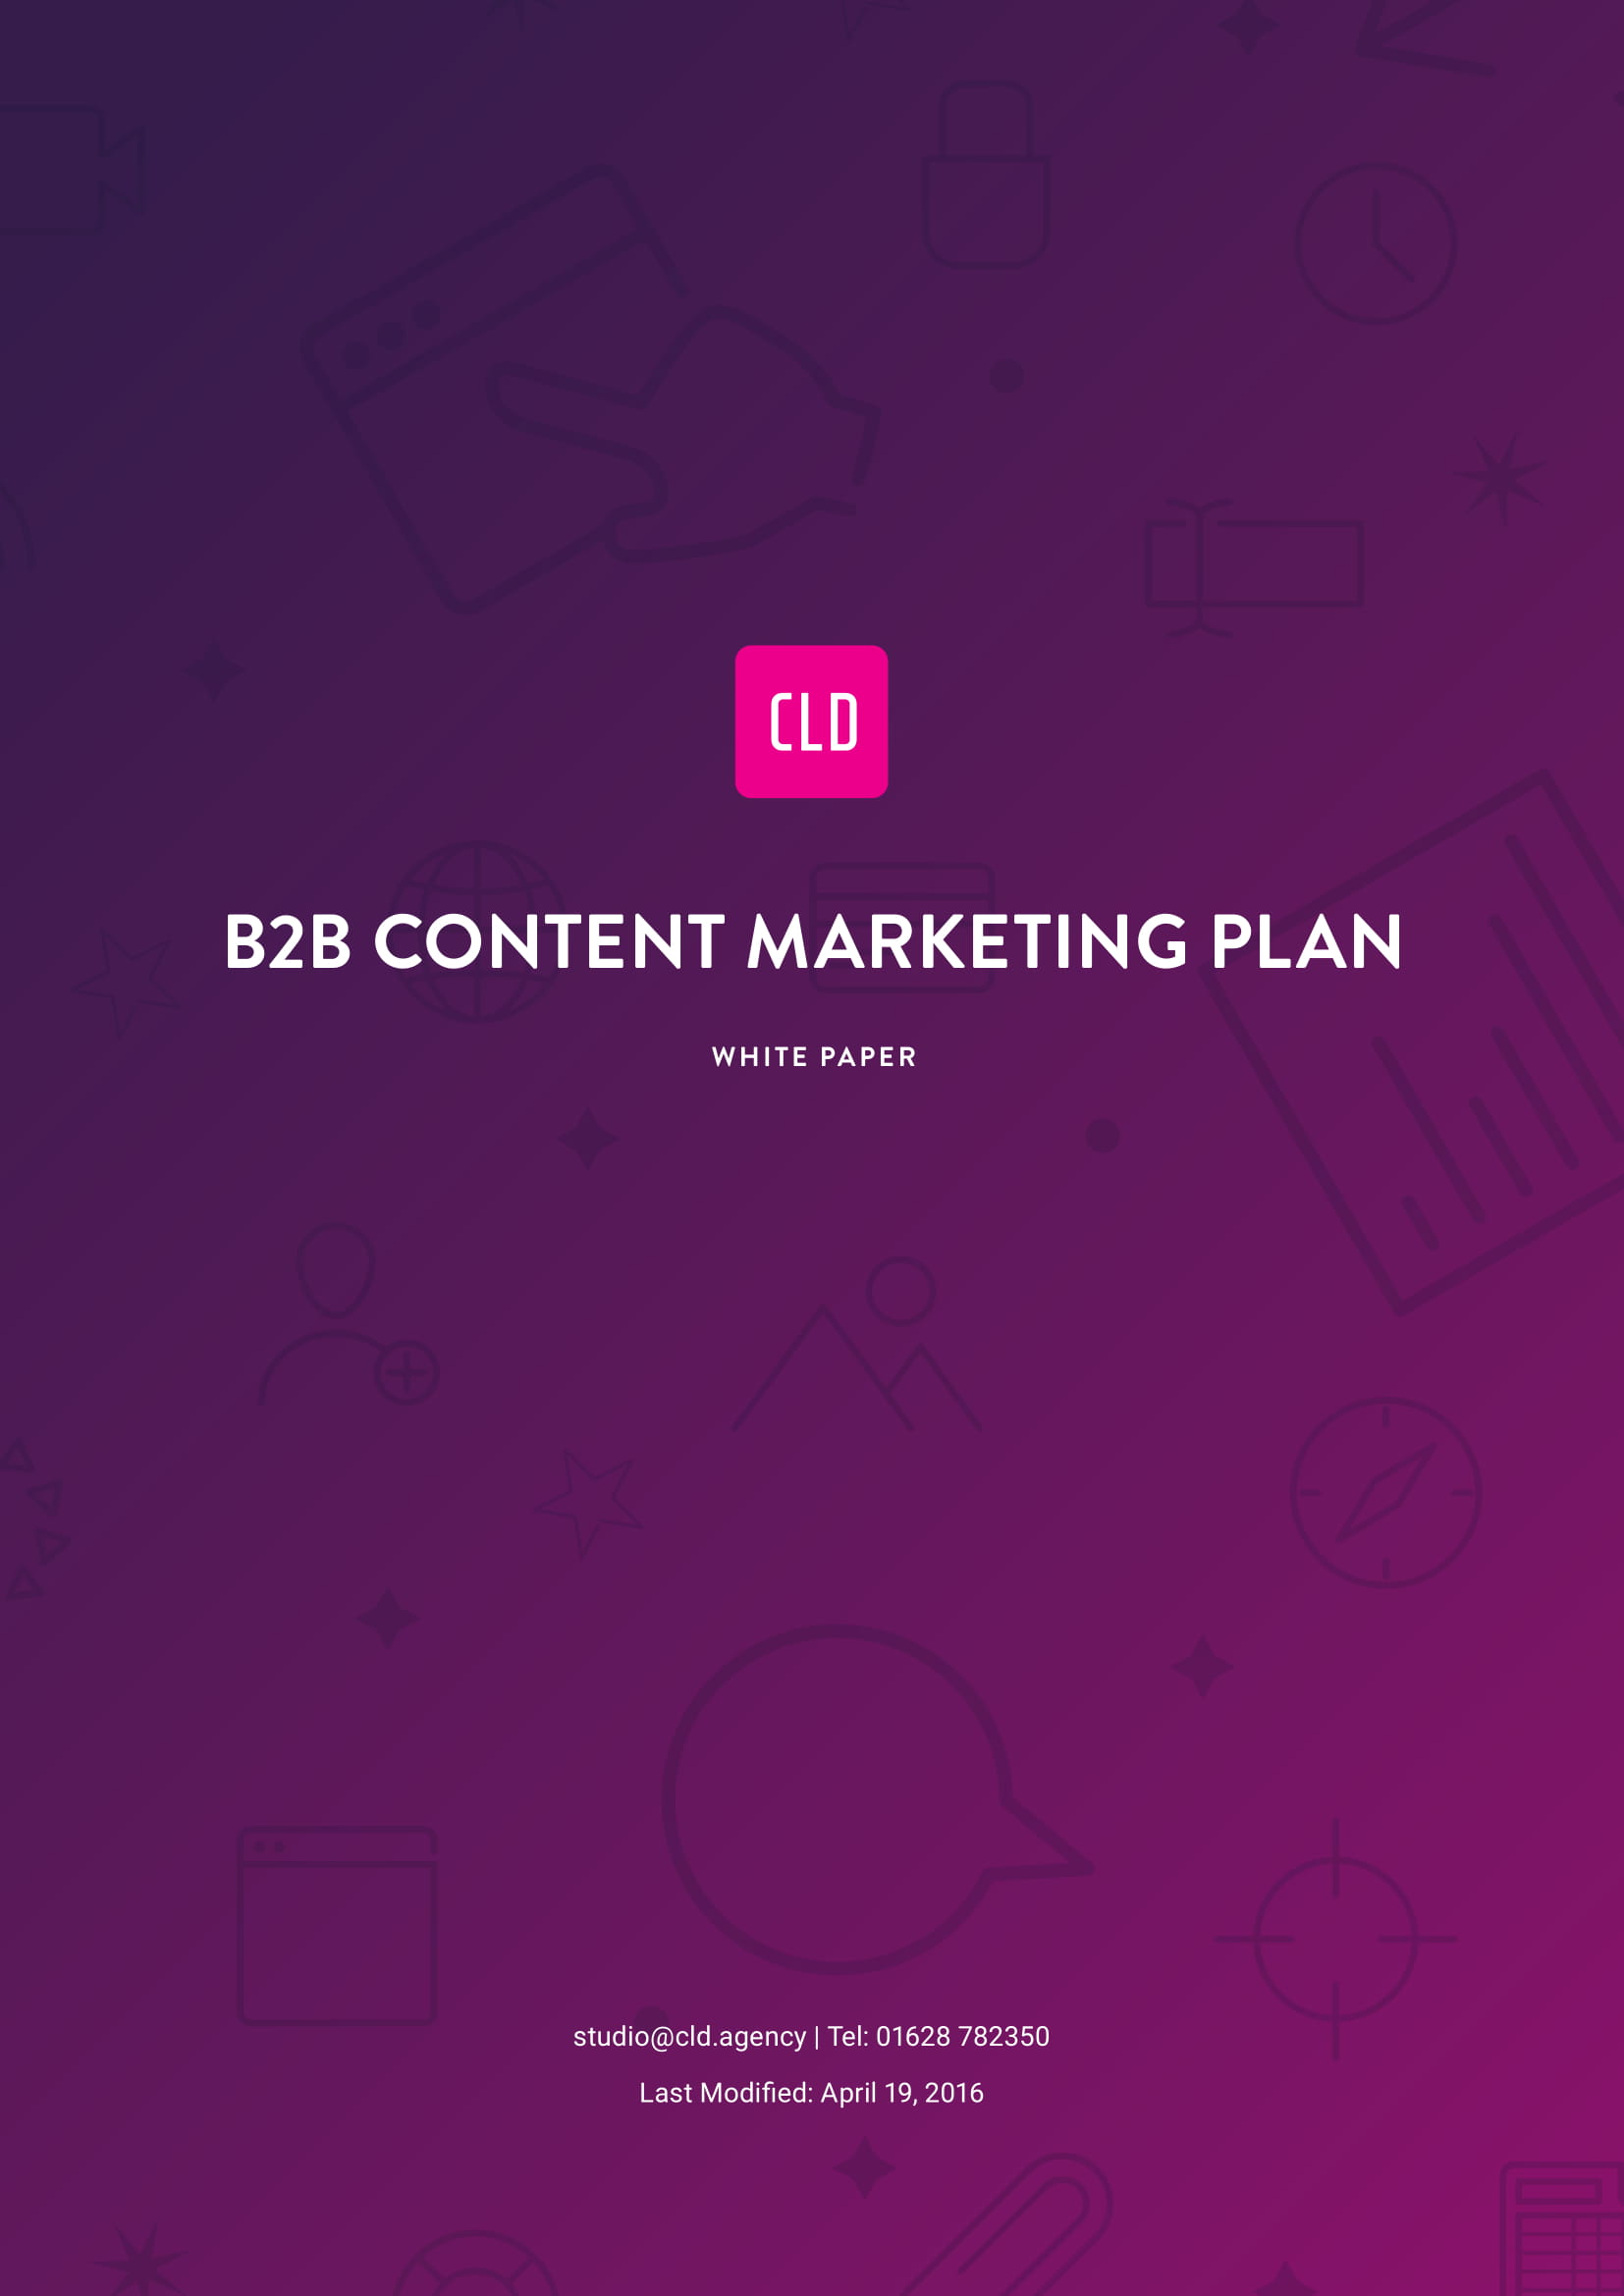 b2b content marketing plan example